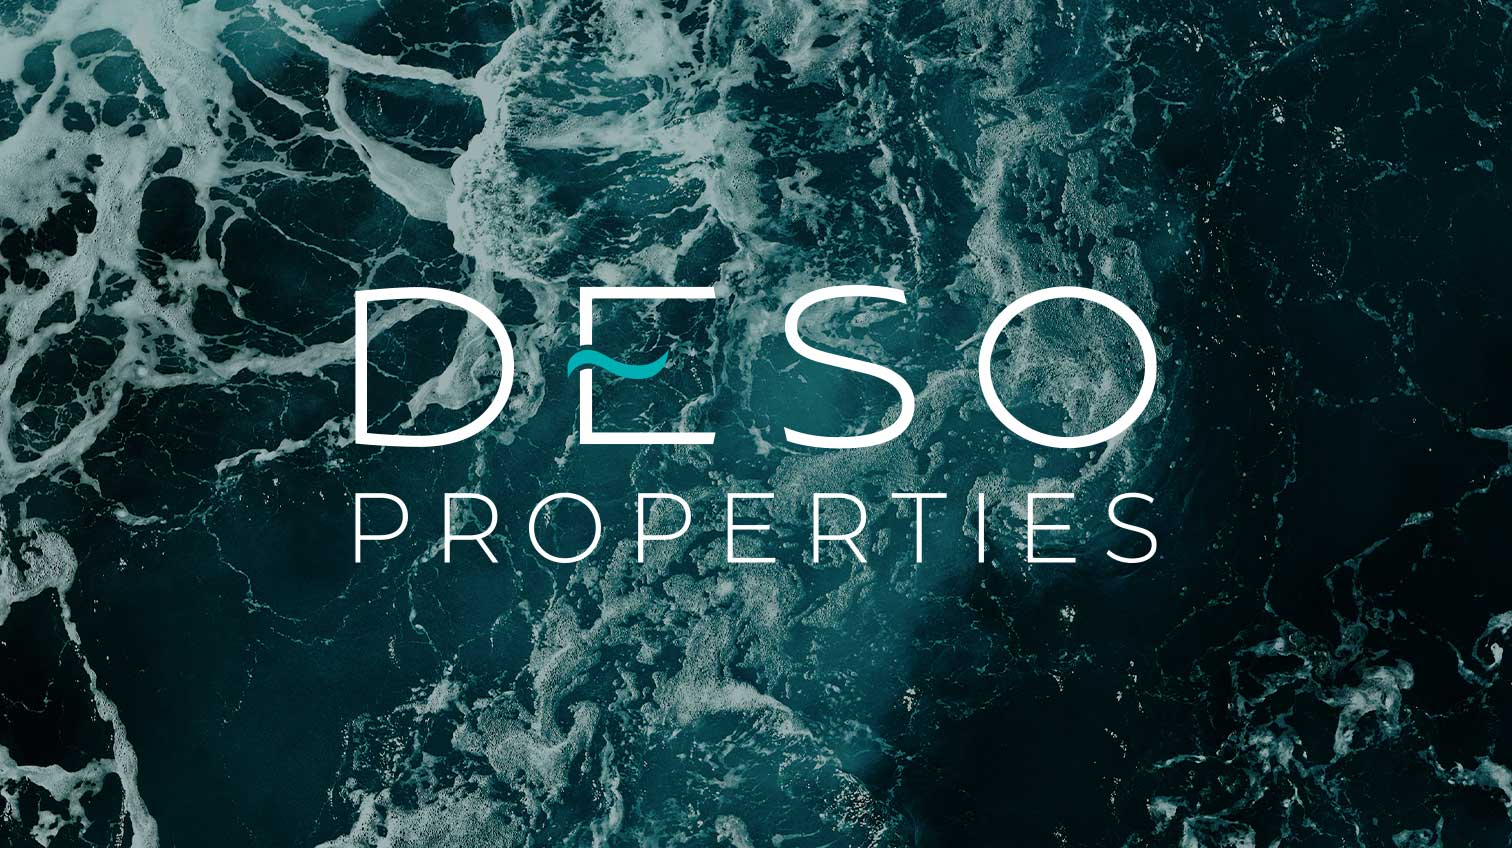 Deso Properties logo against water waves background - White Canvas Design